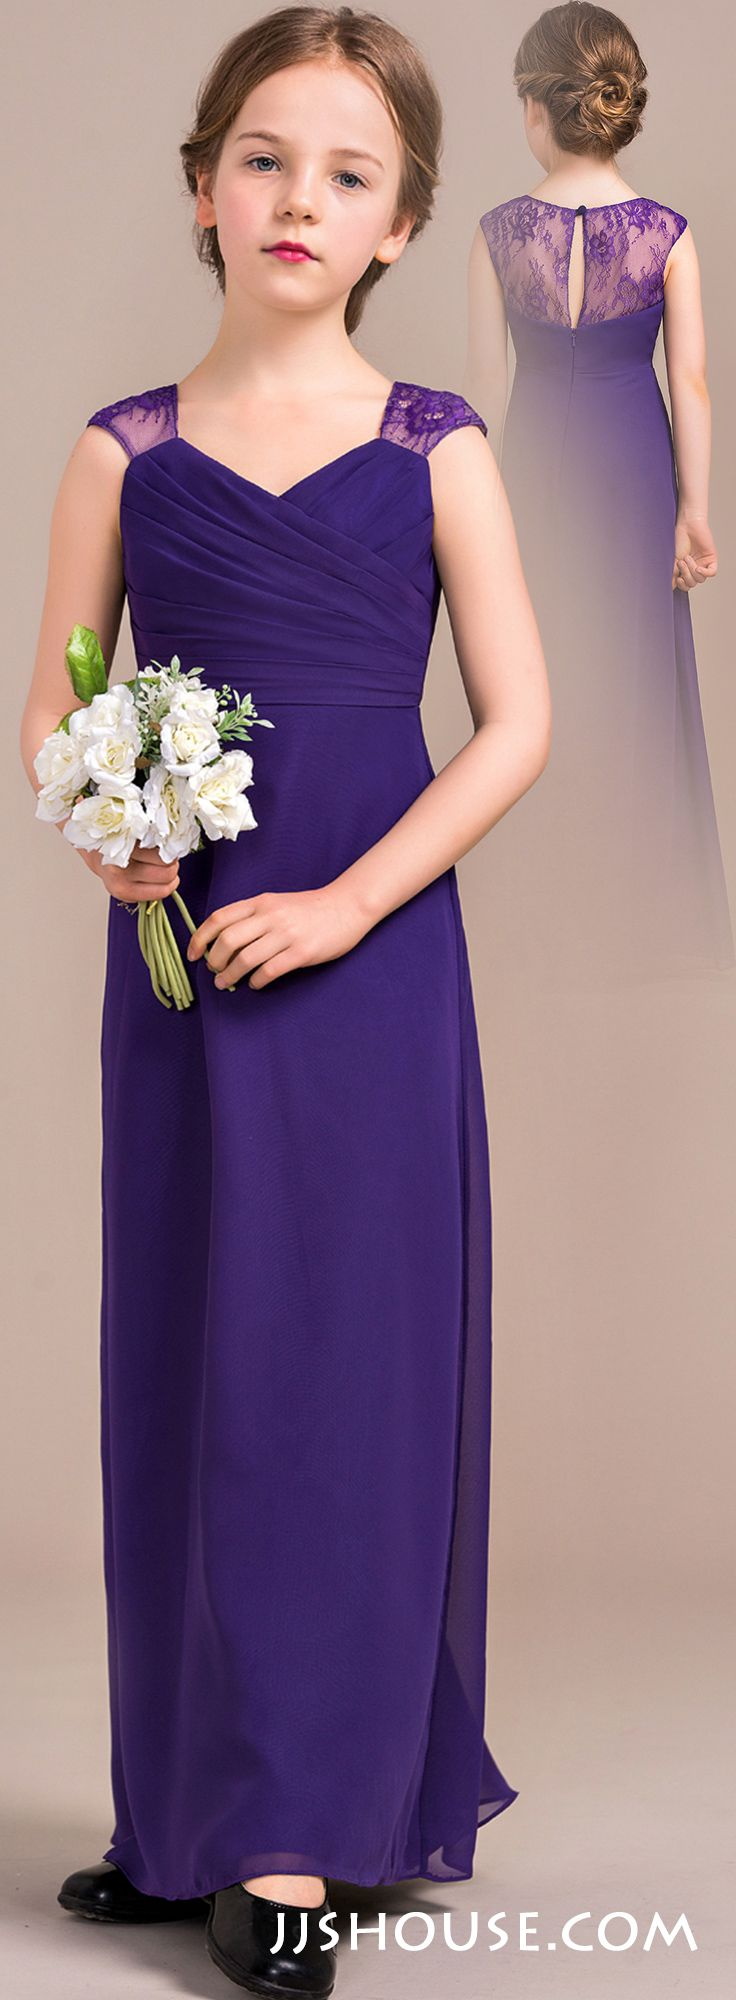 Your junior bridesmaid will love this stunning elegant long dress ...